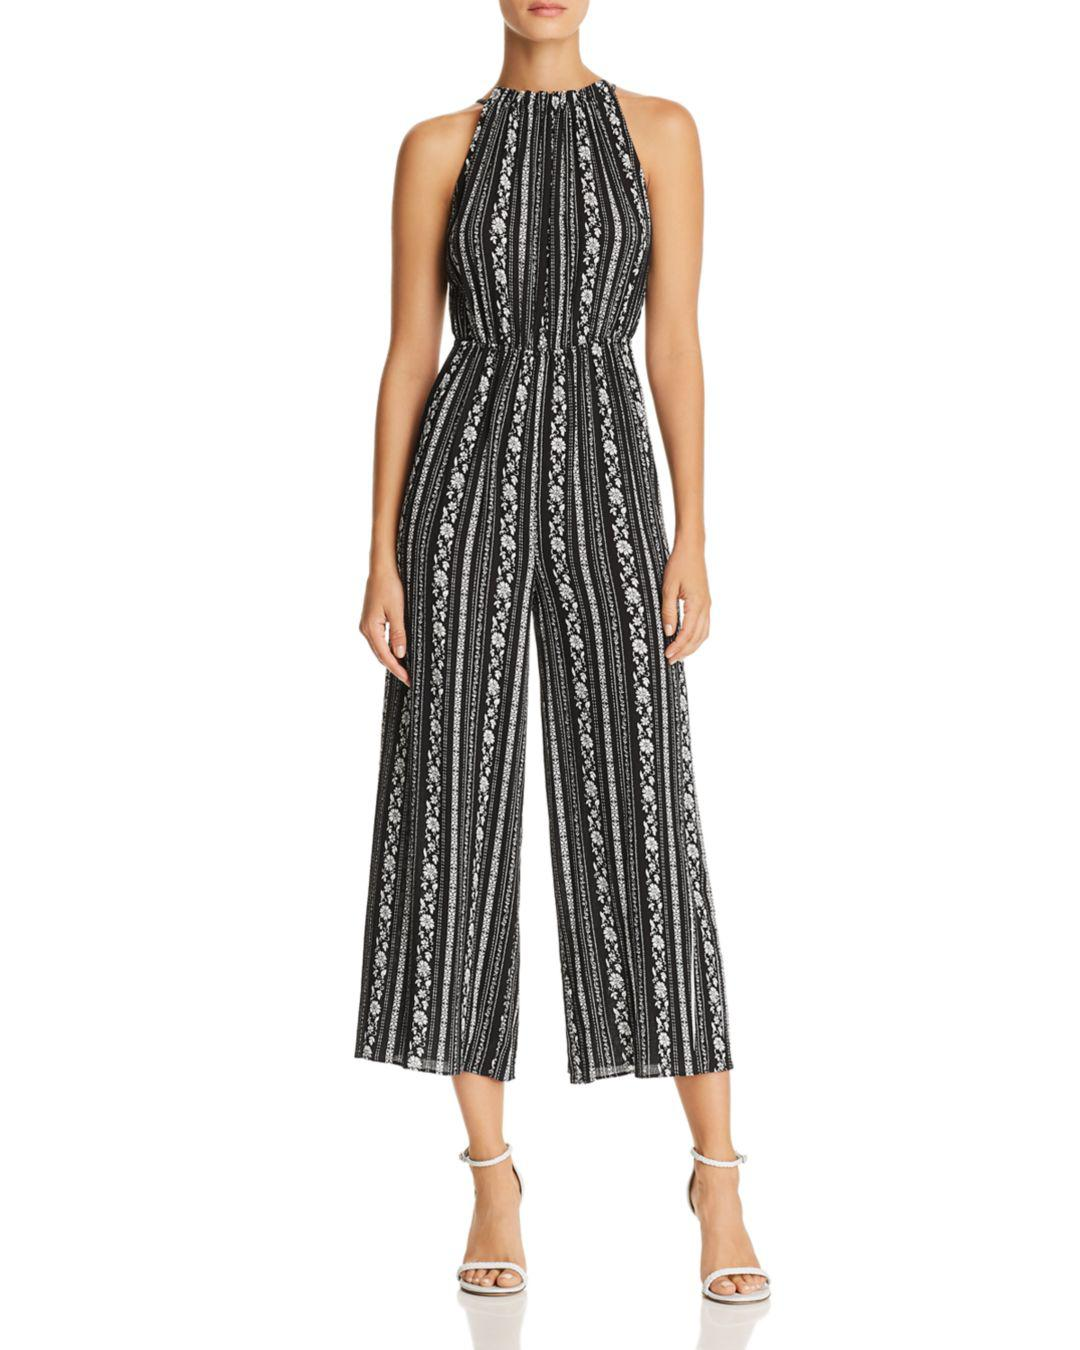 be19002ca964 Aqua - Black Floral Gauze Wide-leg Jumpsuit - Lyst. View fullscreen